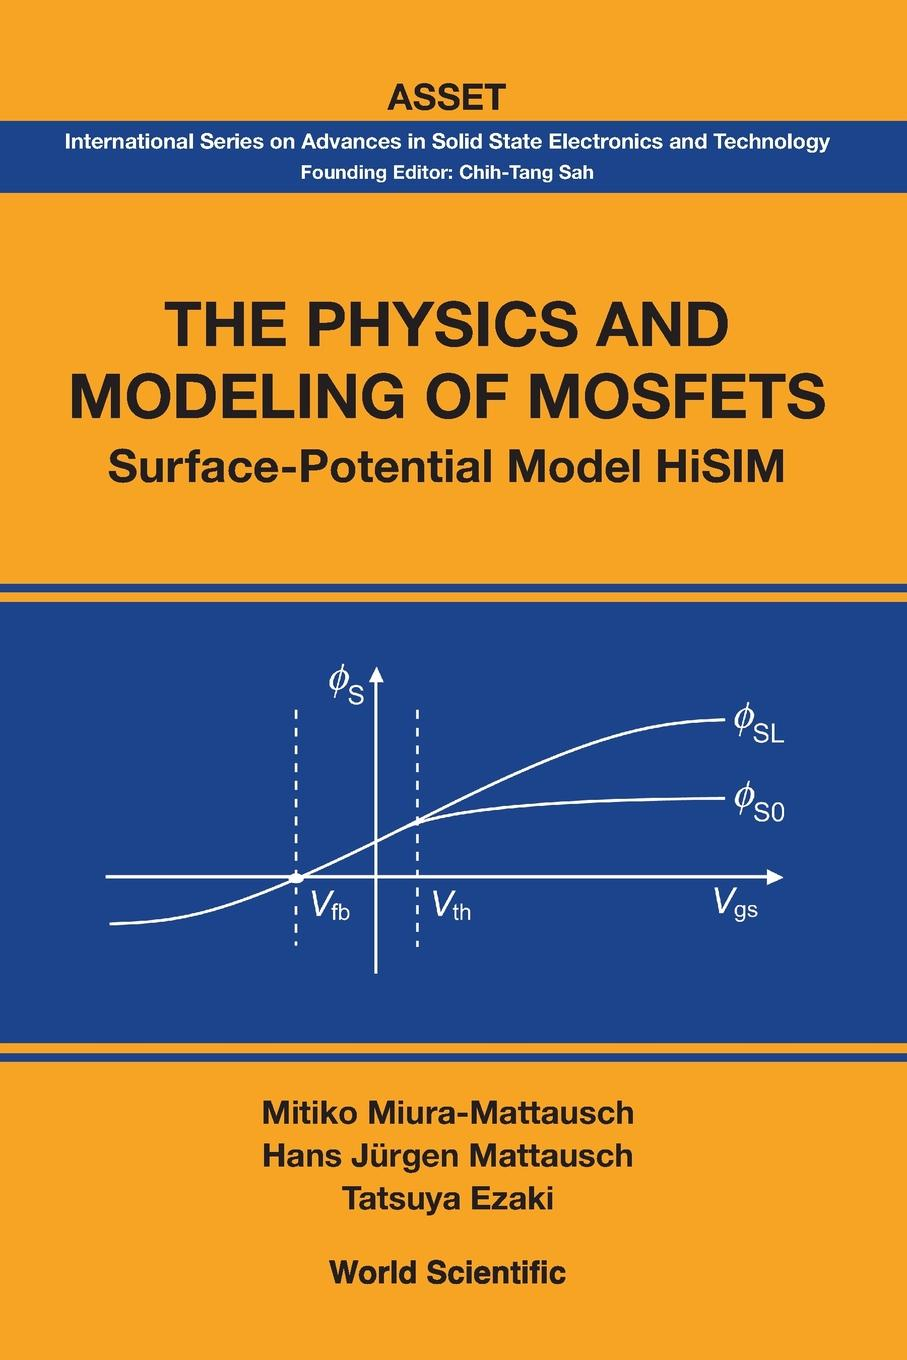 Mitiko Miura-Mattausch, Hans Jurgen Mattausch, Tatsuya Ezaki PHYSICS AND MODELING OF MOSFETS, THE. SURFACE-POTENTIAL MODEL HISIM free shipping 10pcs lot transistor transistor g30n60hs to 247